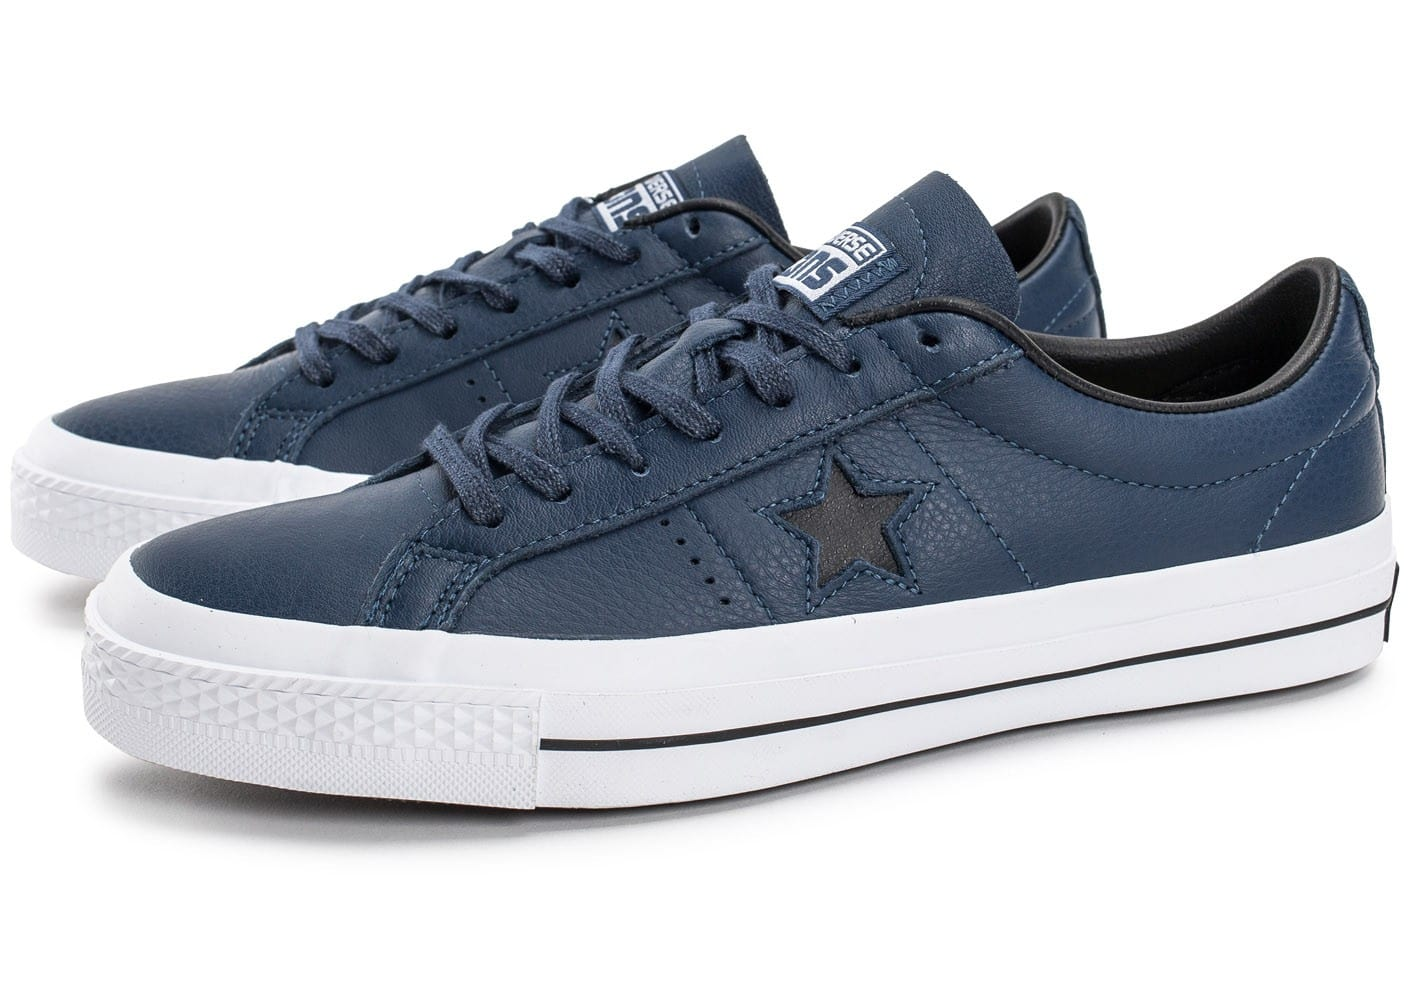 Converse One Star Leather bleu marine Chaussures Baskets